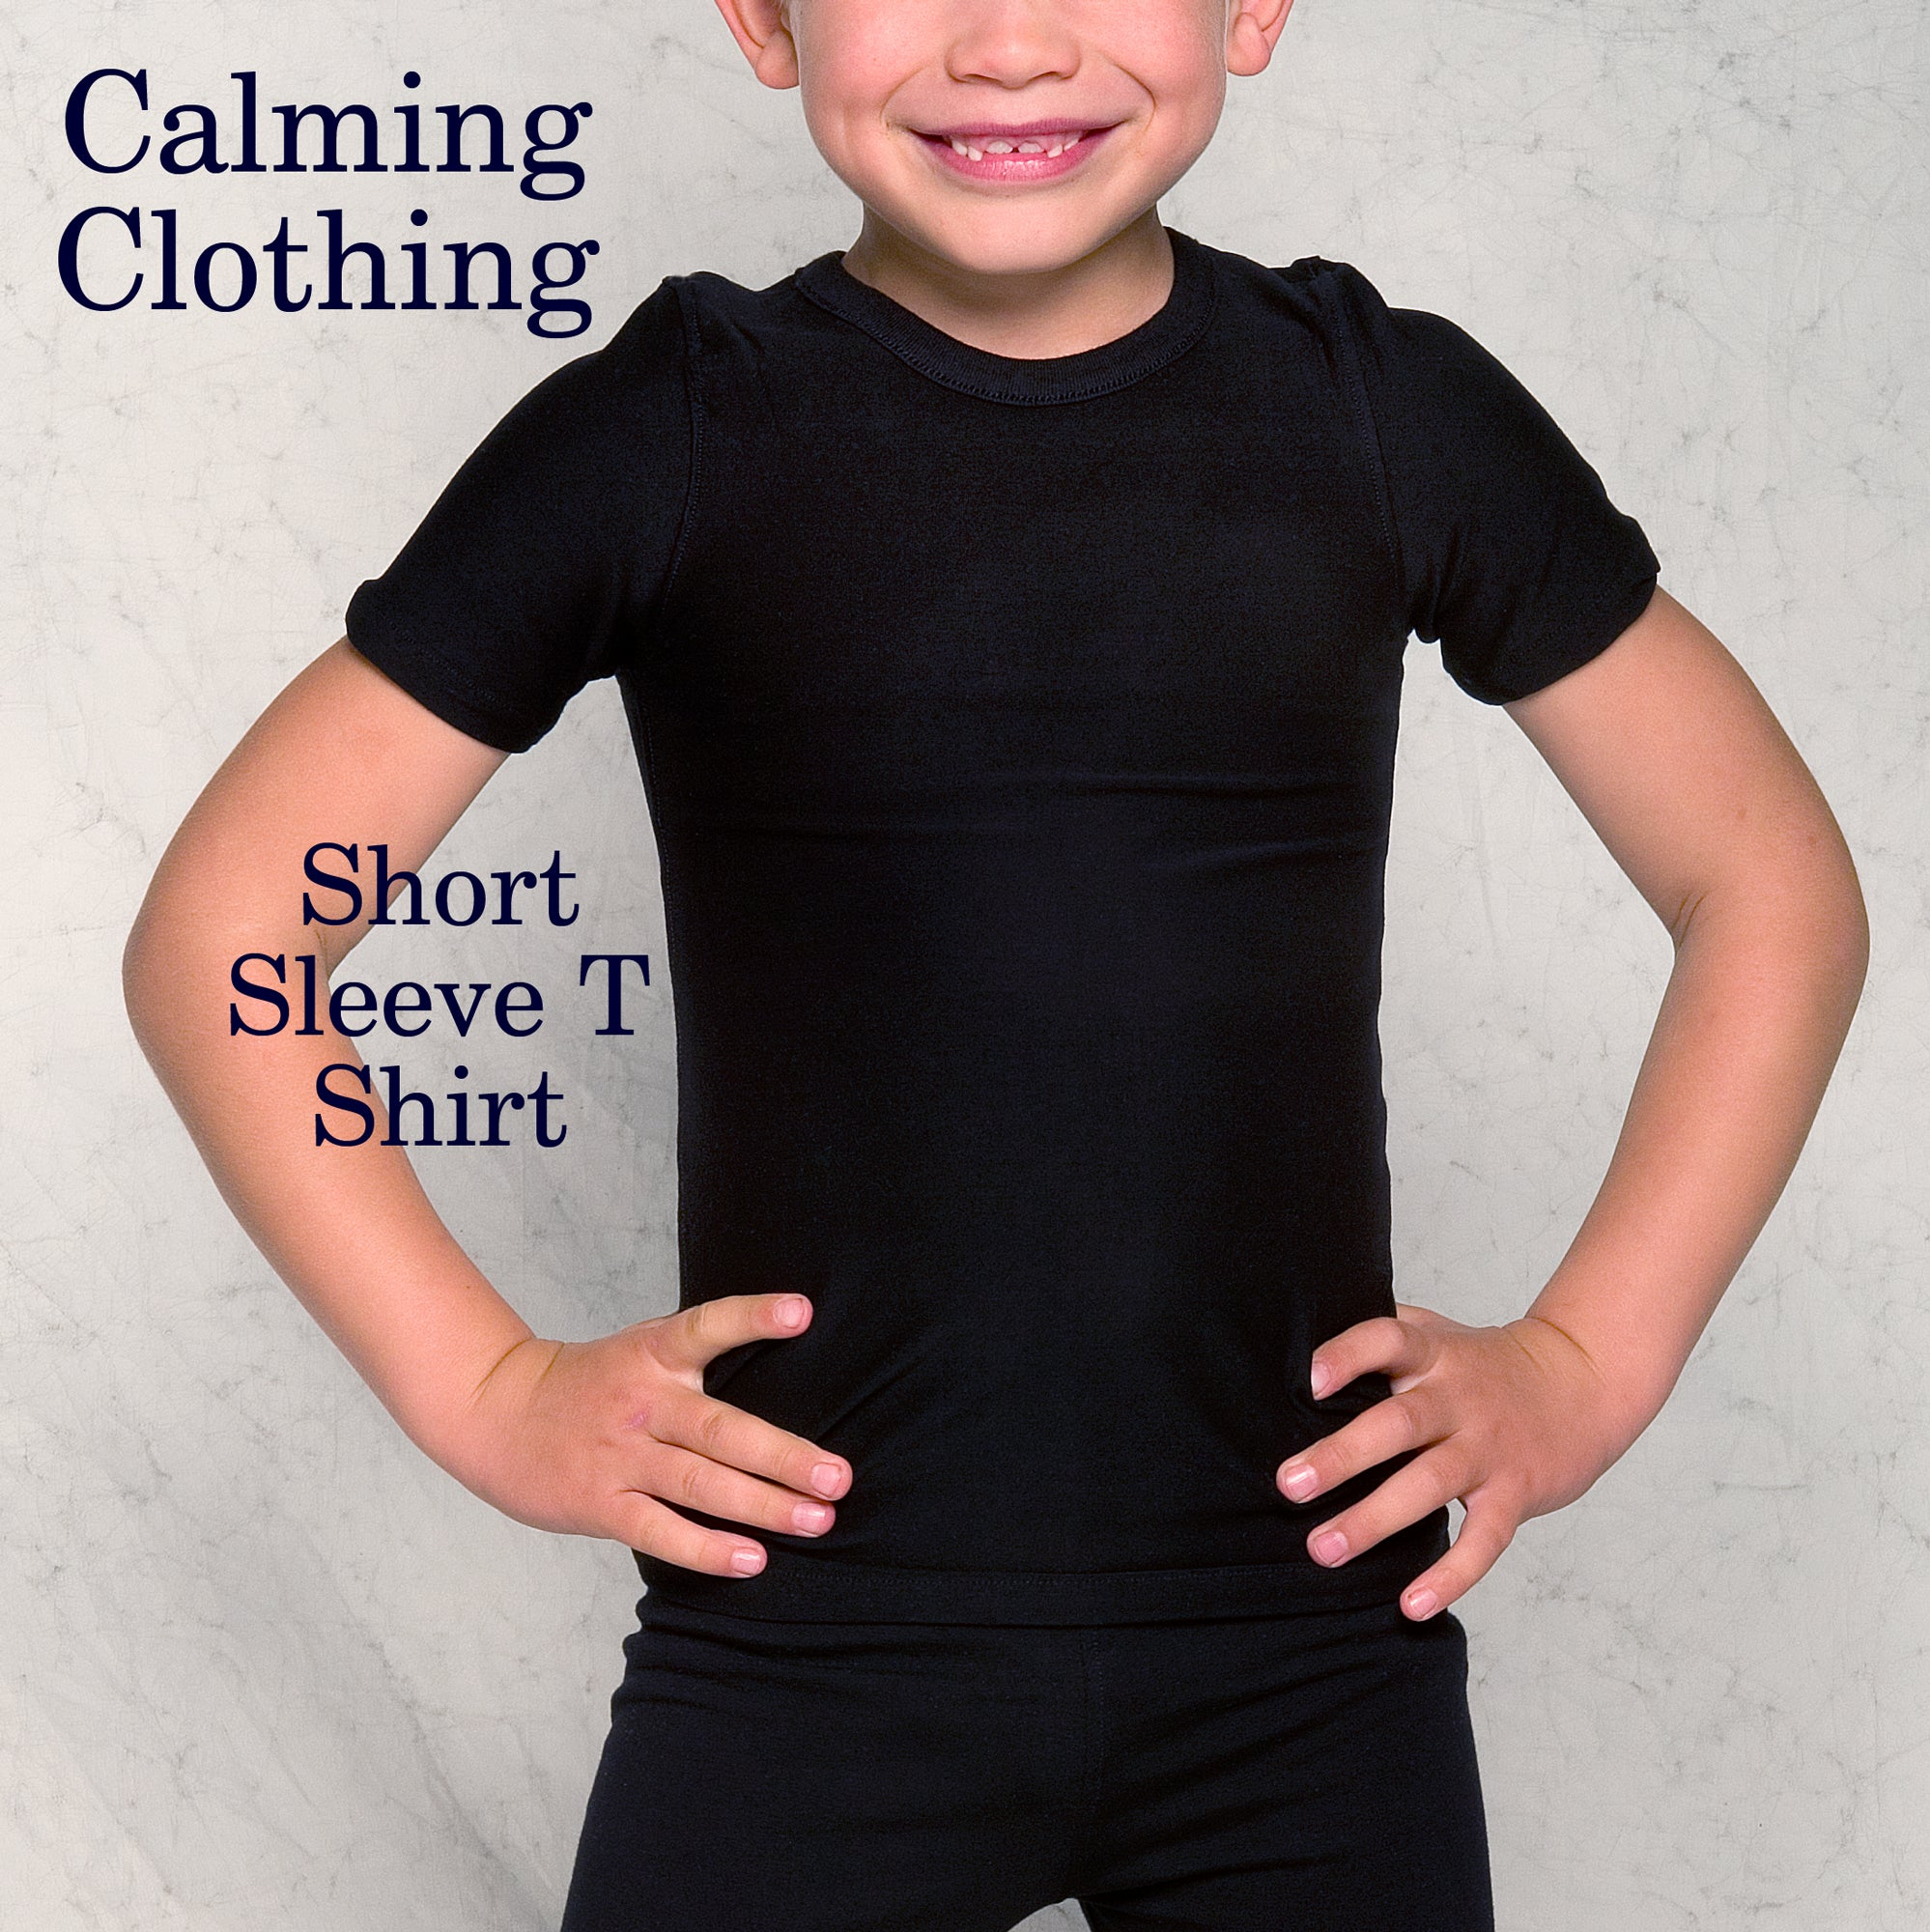 Calming Clothing Short Sleeve Tshirt (Black)